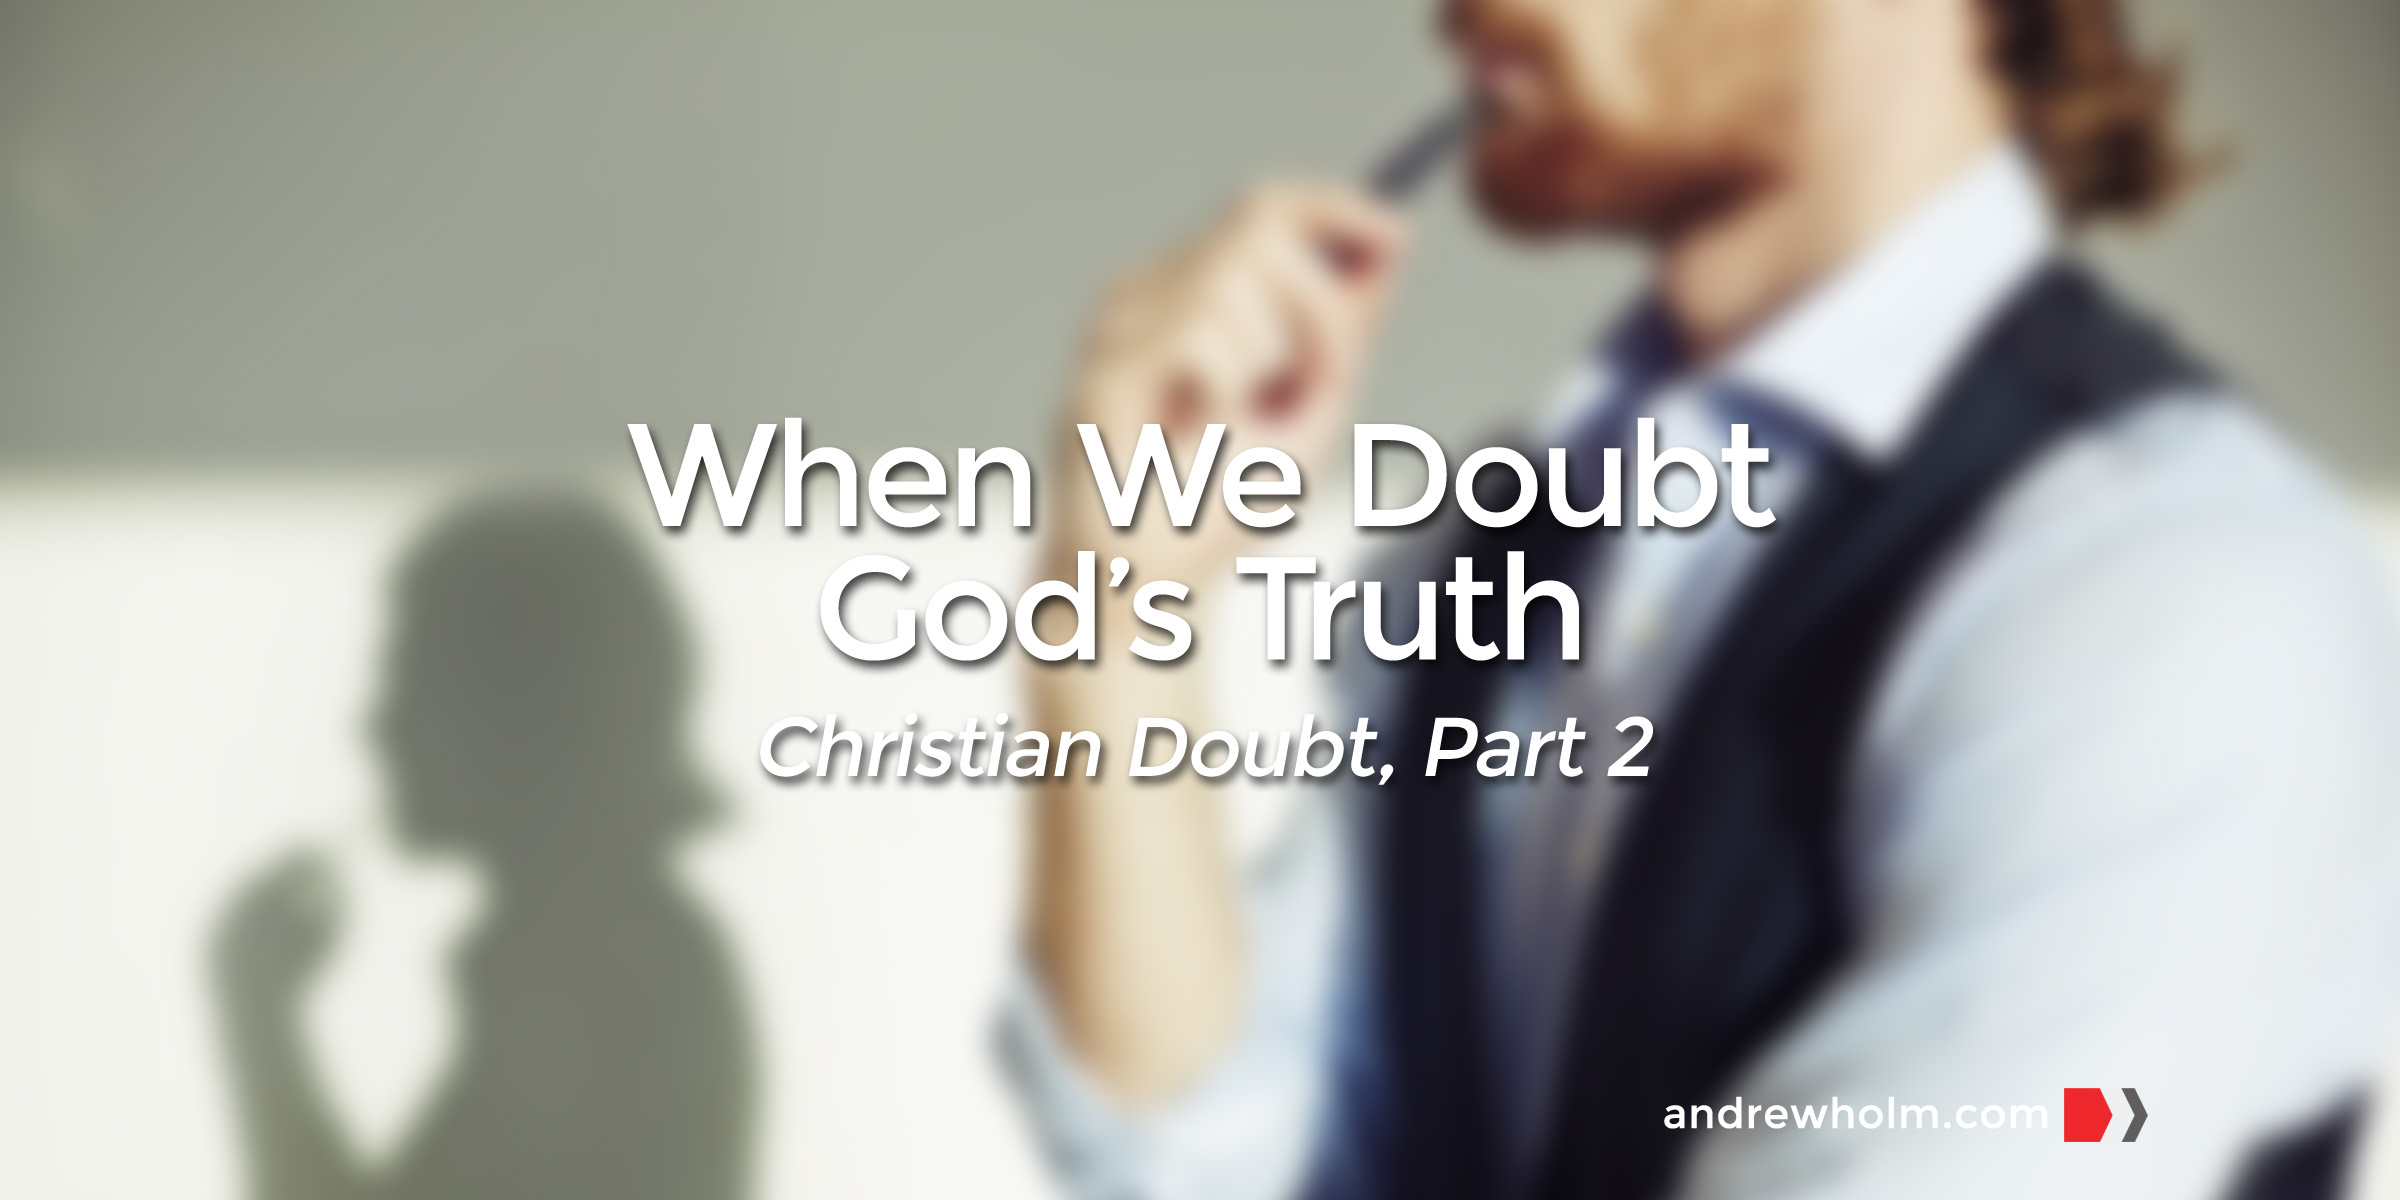 Christian Doubt, Part 2